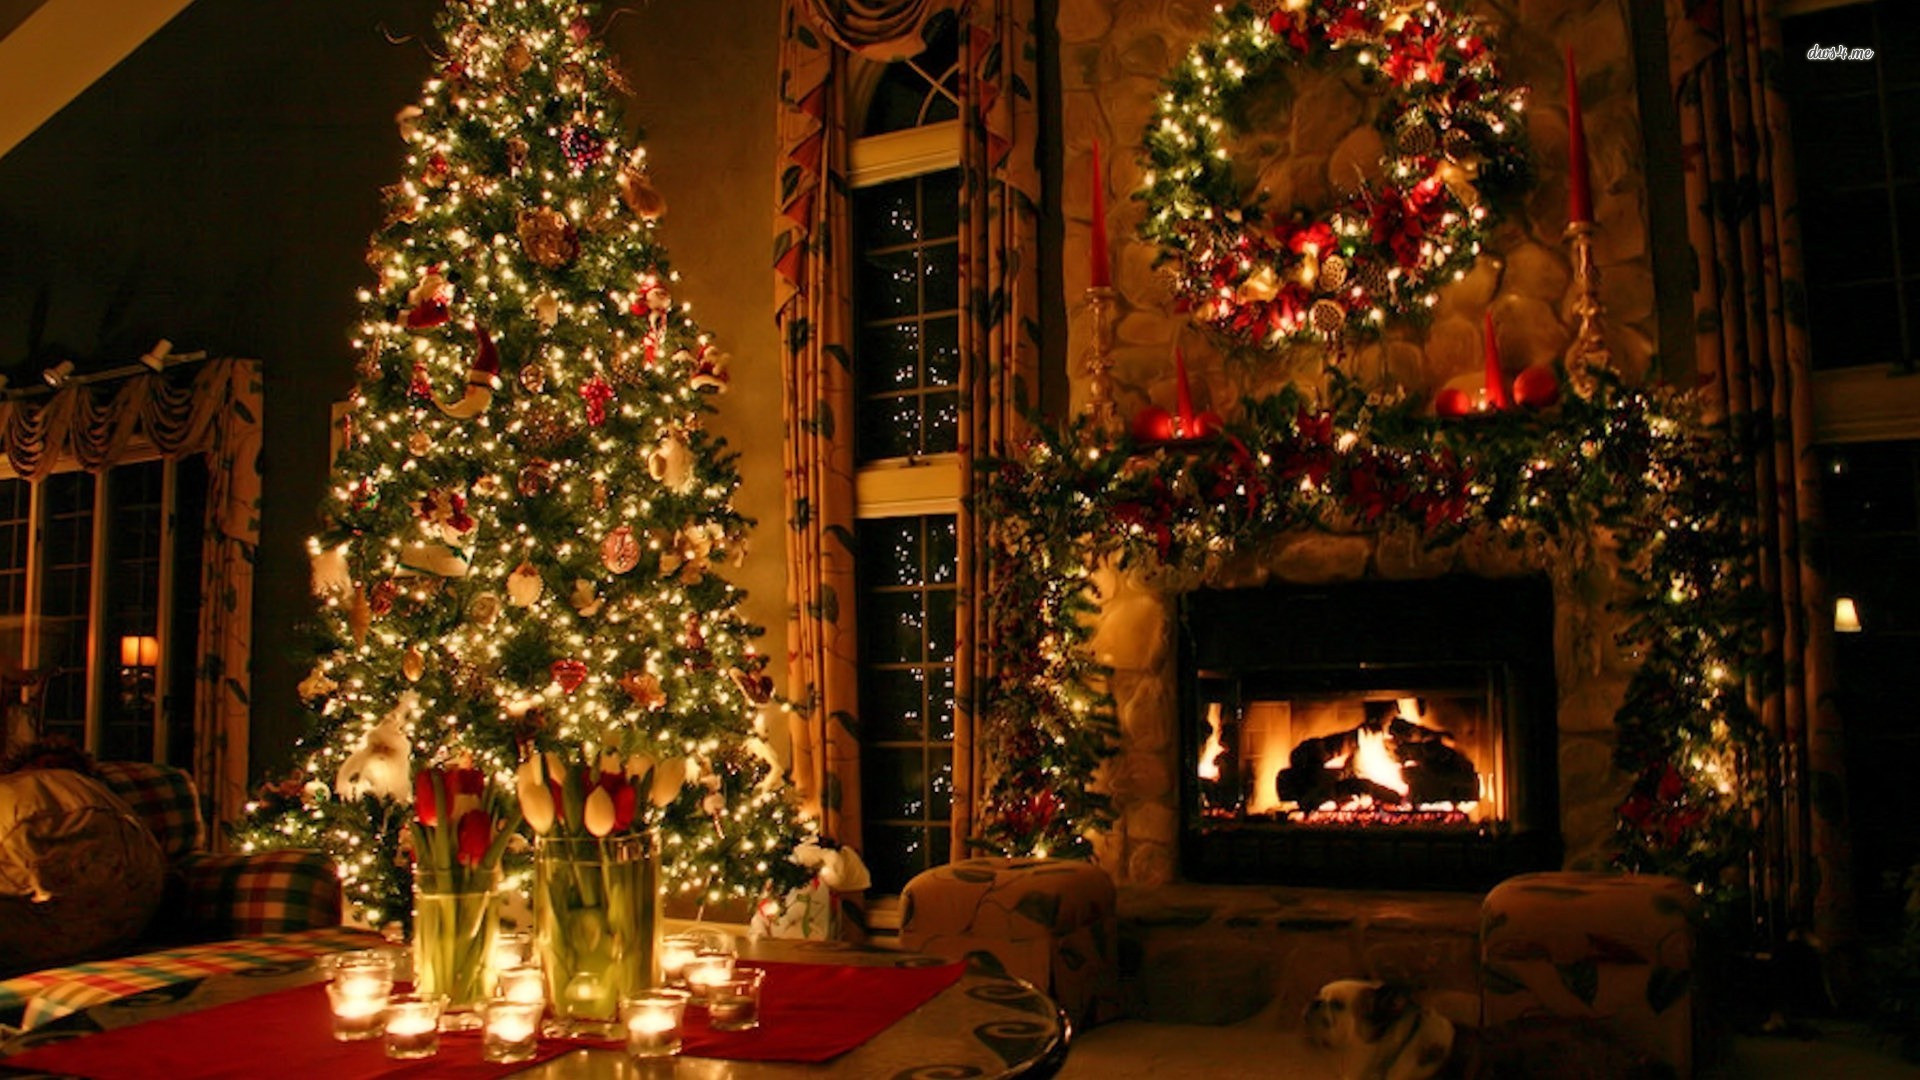 New Christmas Holiday Decorations Desktop Wallpaper Free Christmas Decorations Of Adorable 43 Pics Free Christmas Decorations